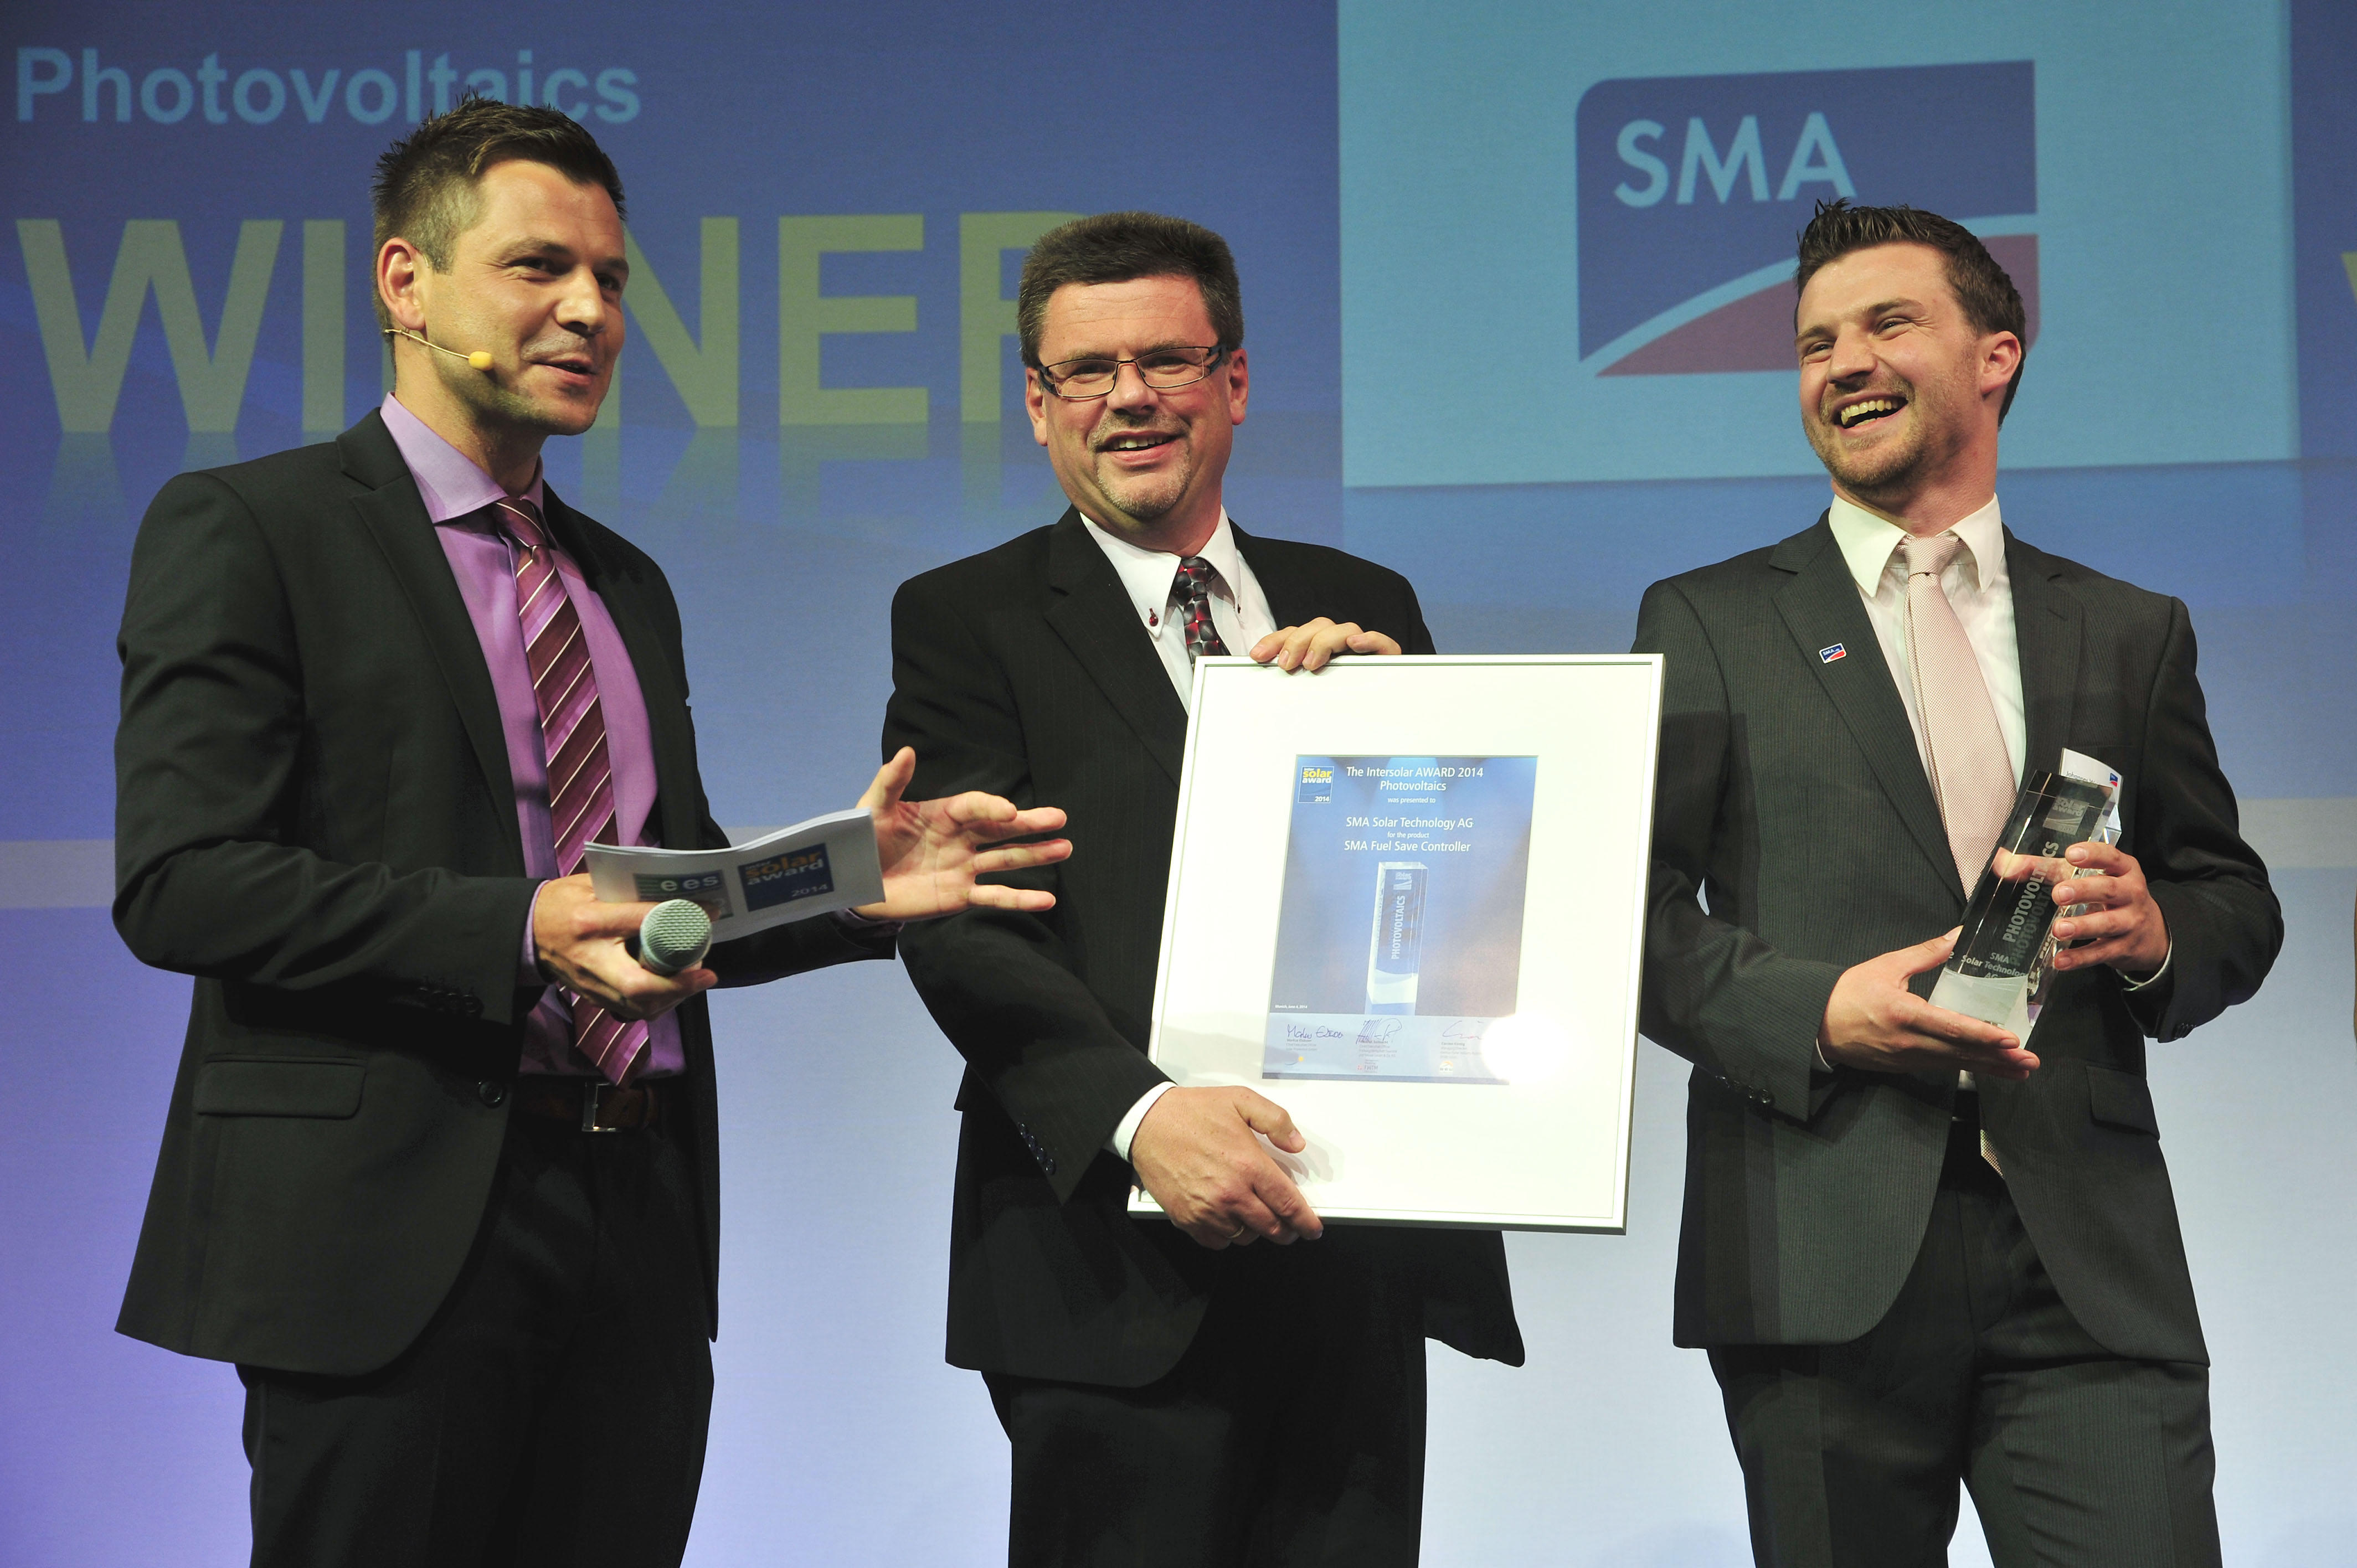 """Johannes Weide (right) and Volker Wachenfeld (middle) received the Intersolar AWARD in the """"Photovoltaics"""" category for the SMA Fuel Save Controller at Intersolar Europe 2014 in Munich."""